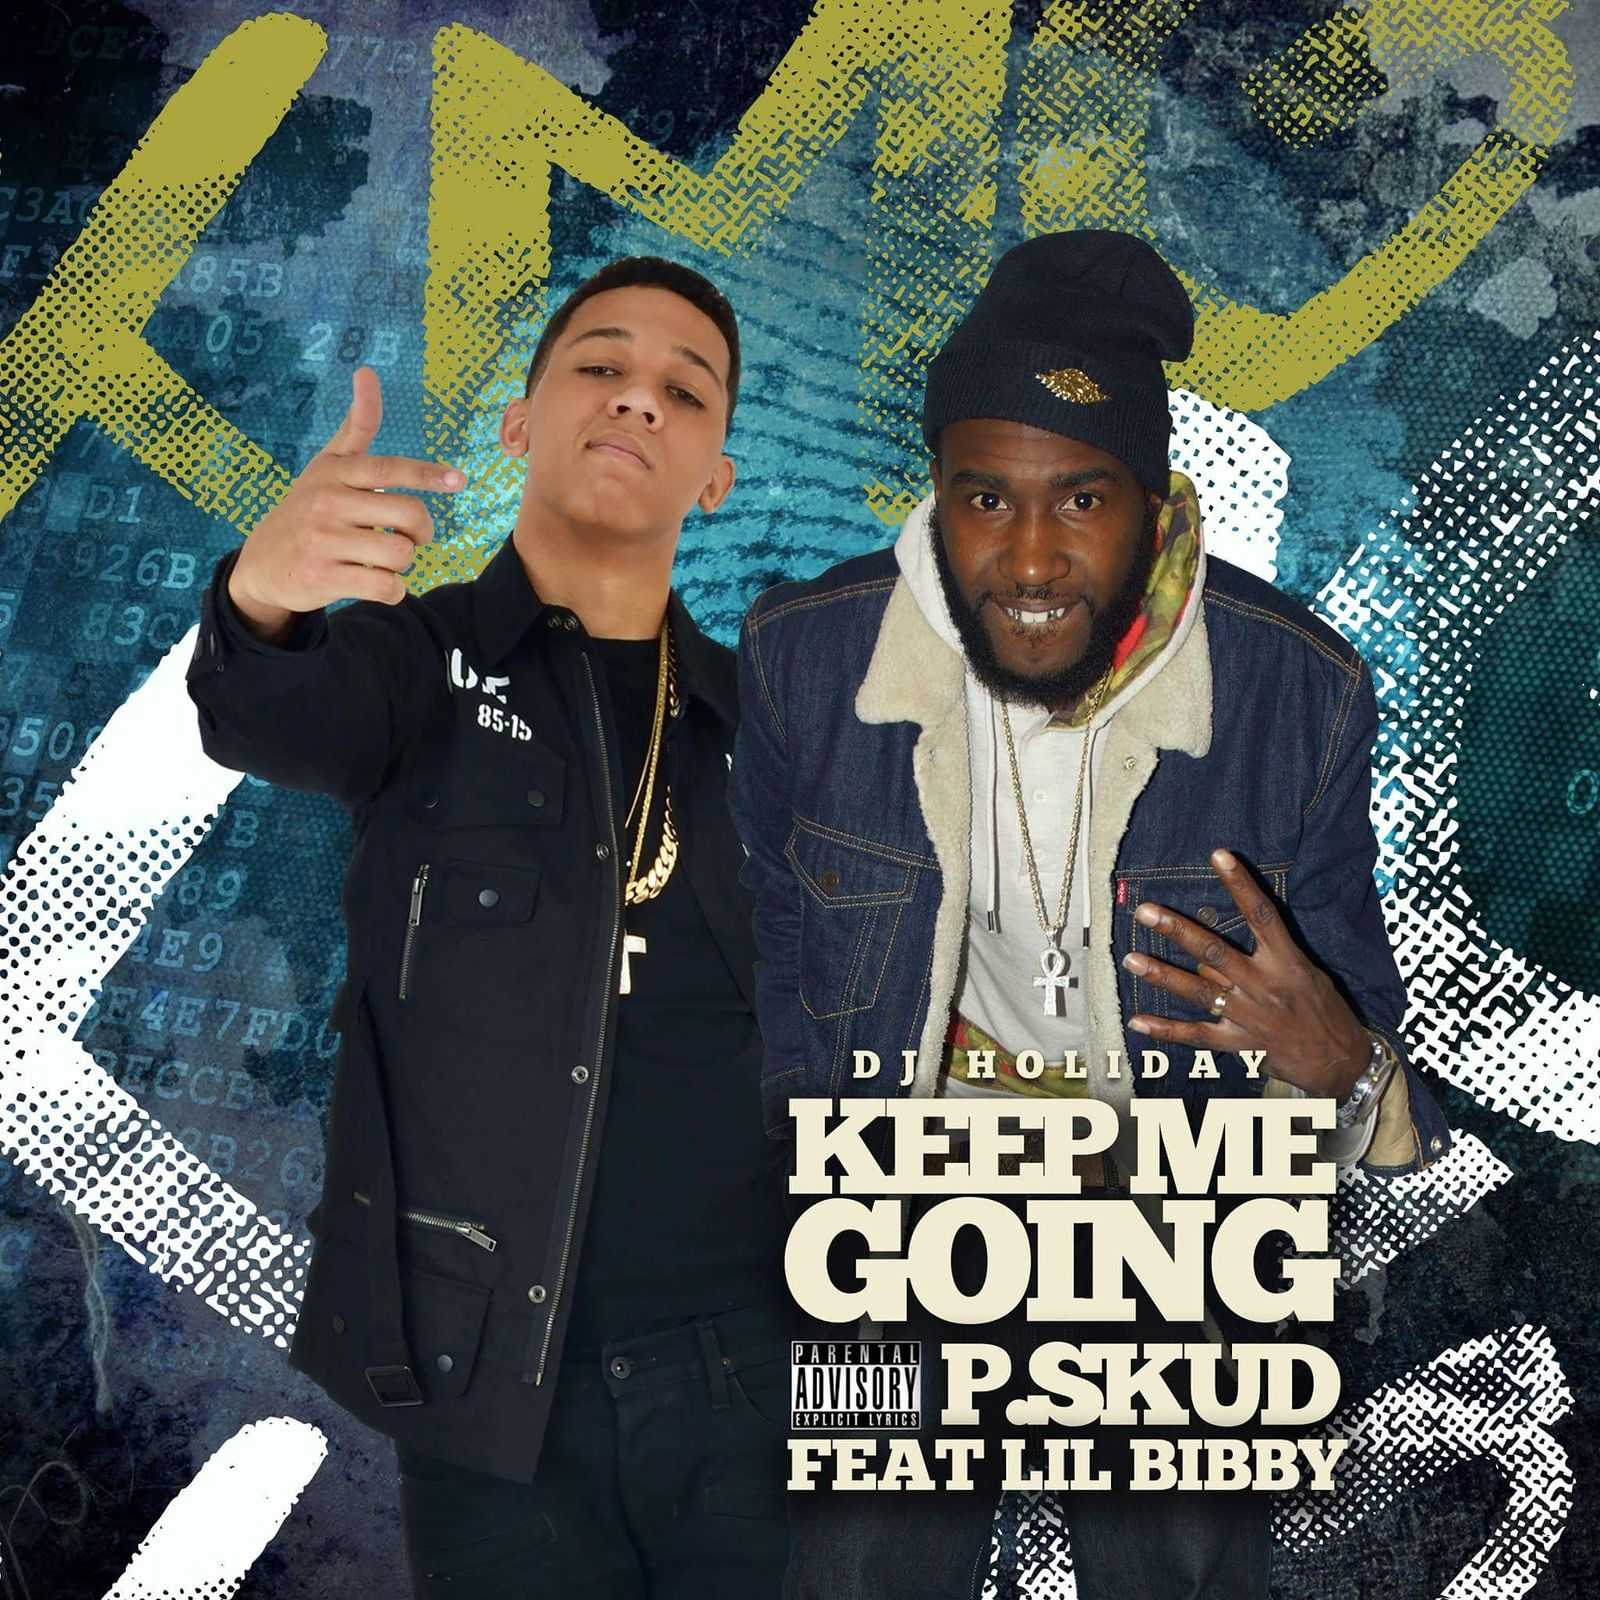 """P.Skud – """"Keep Me Goin"""" Feat. Lil Bibby [Audio]"""